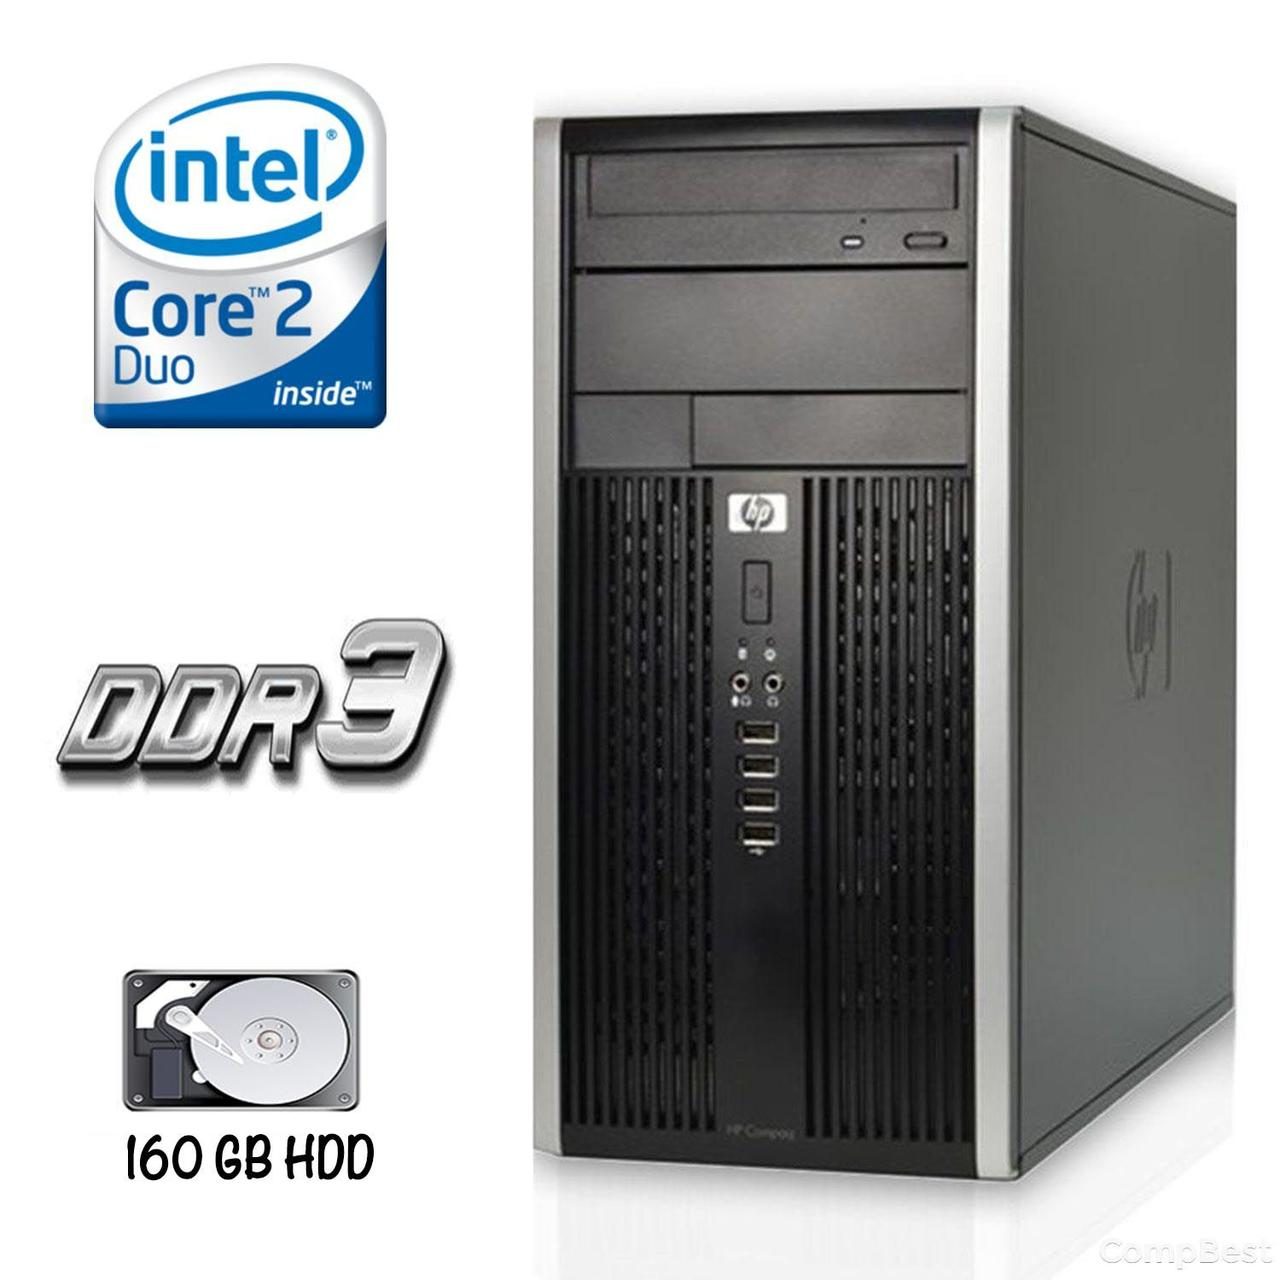 HP 6000 Pro SFF / Intel Core 2 Duo E7500 (2 ядра по 2.93GHz) / 4 GB DDR3 / 500 GB HDD